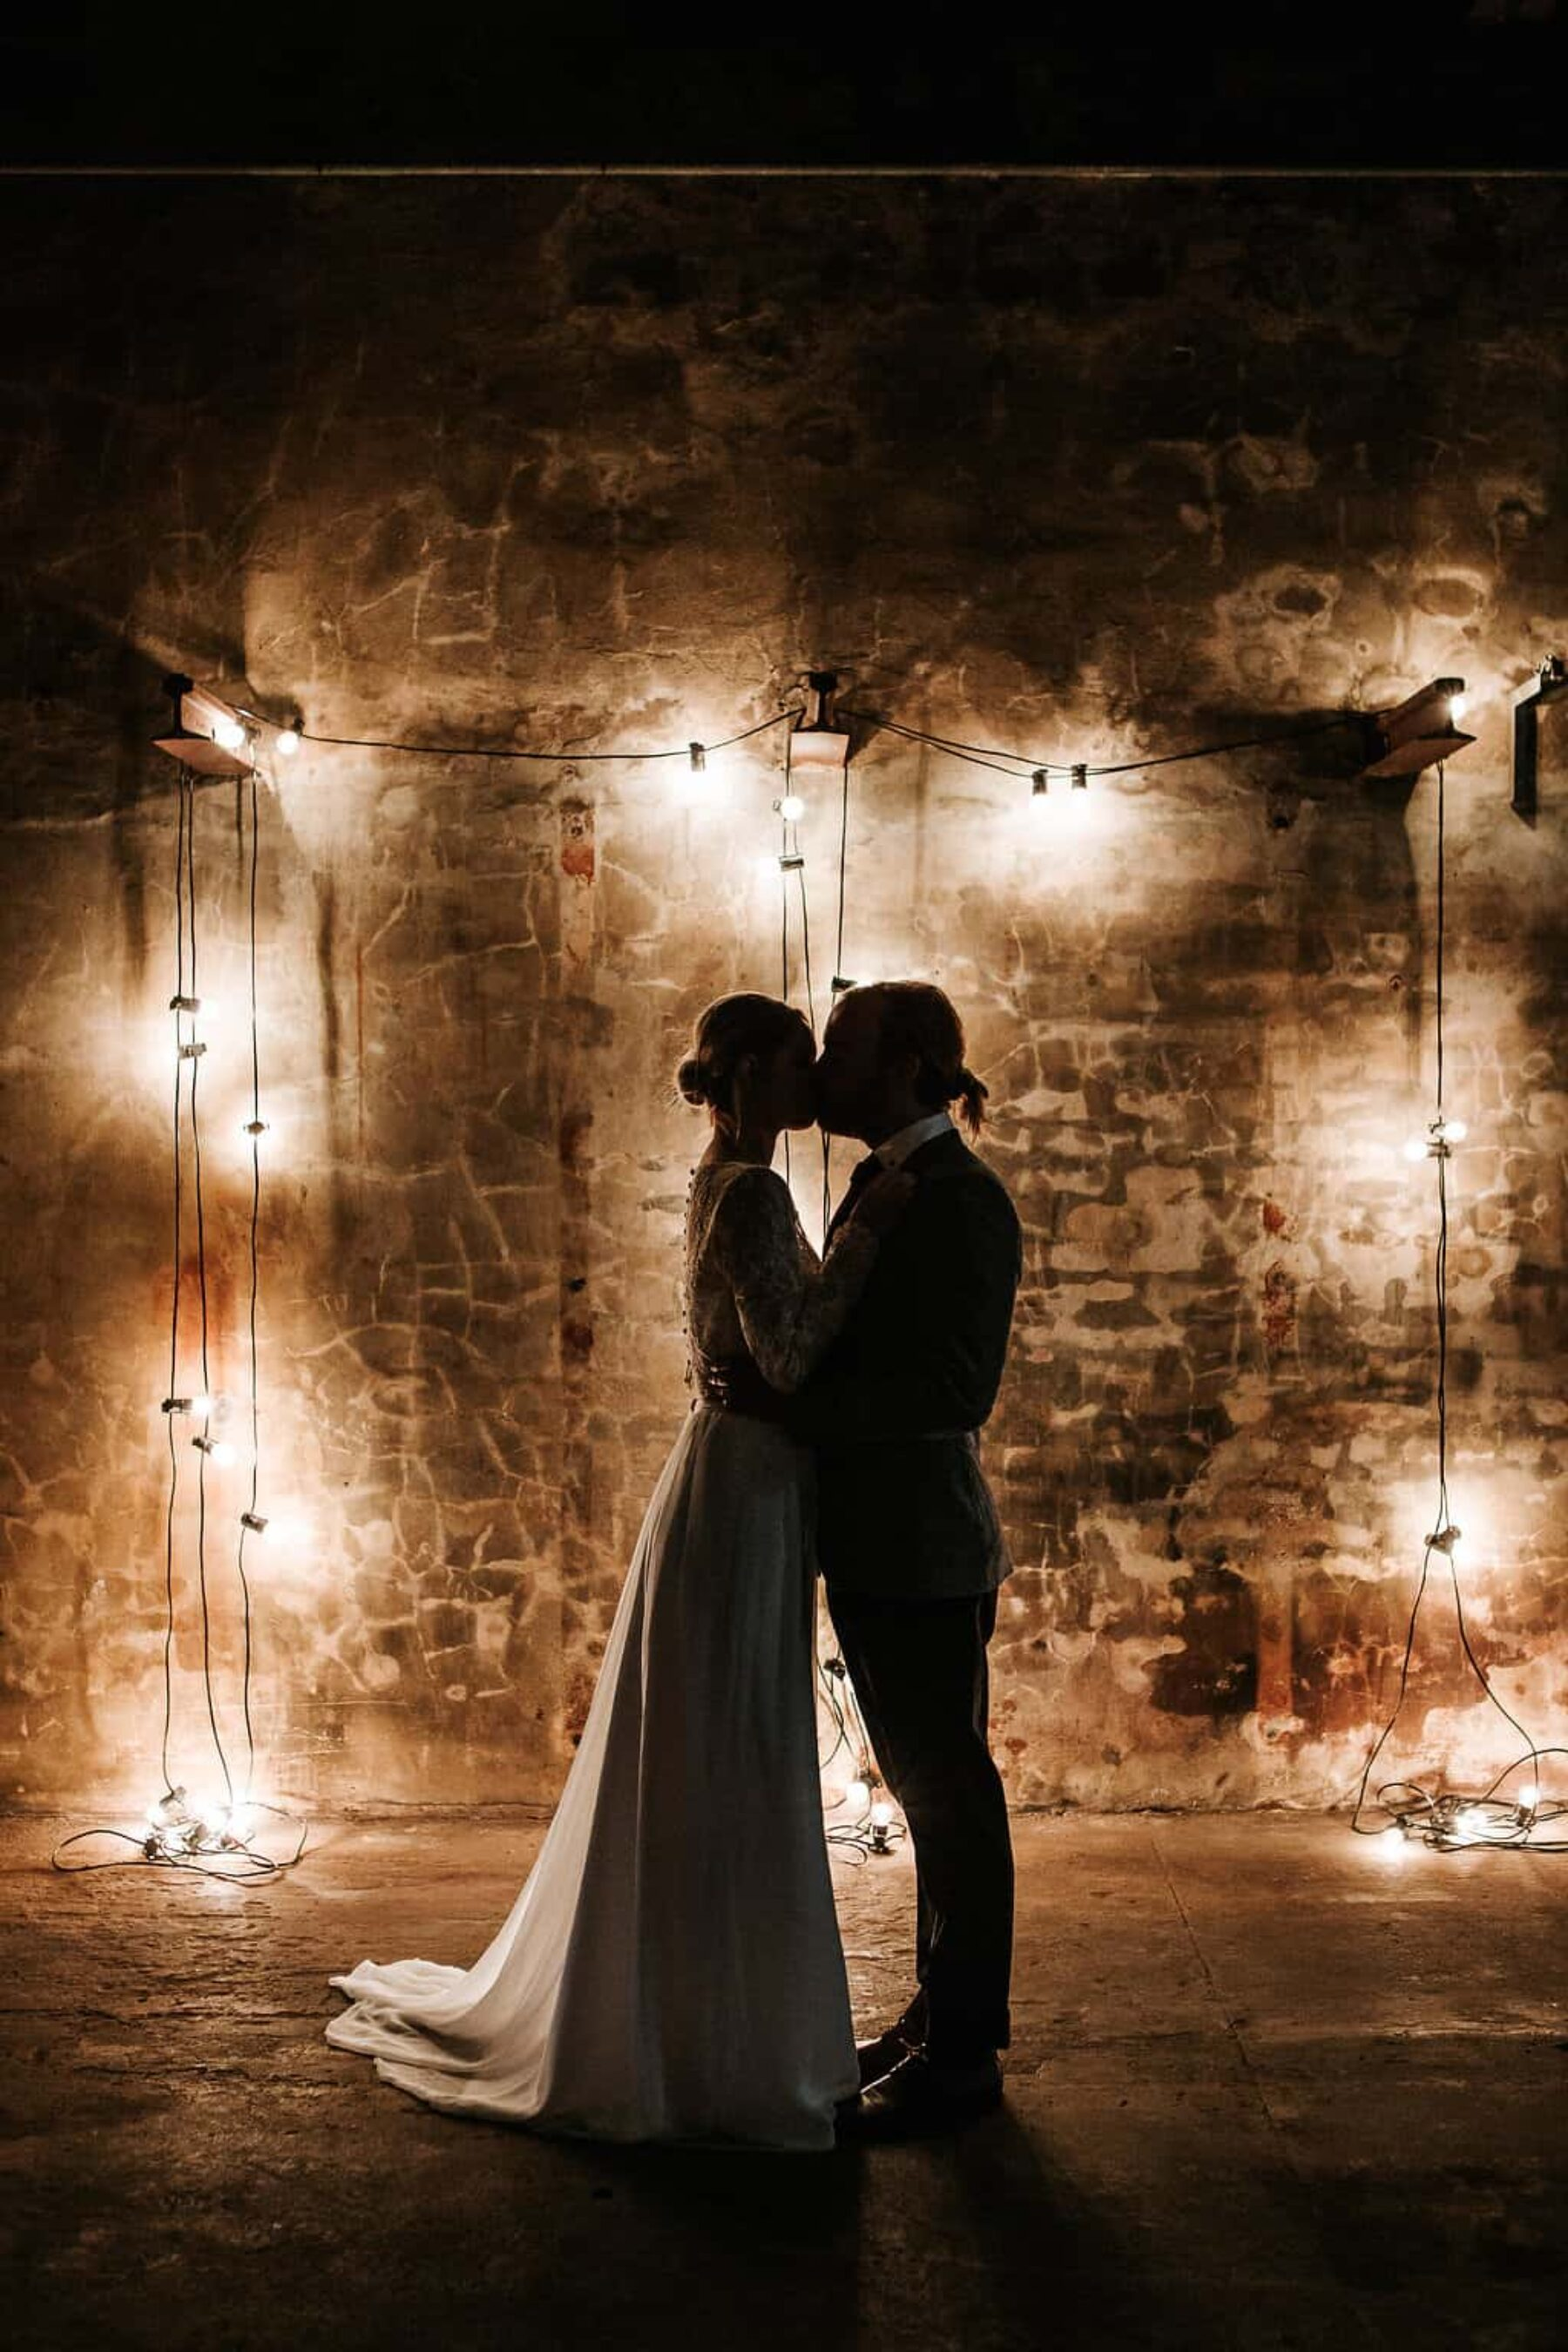 Moody industrial wedding at The Cooperative 1888